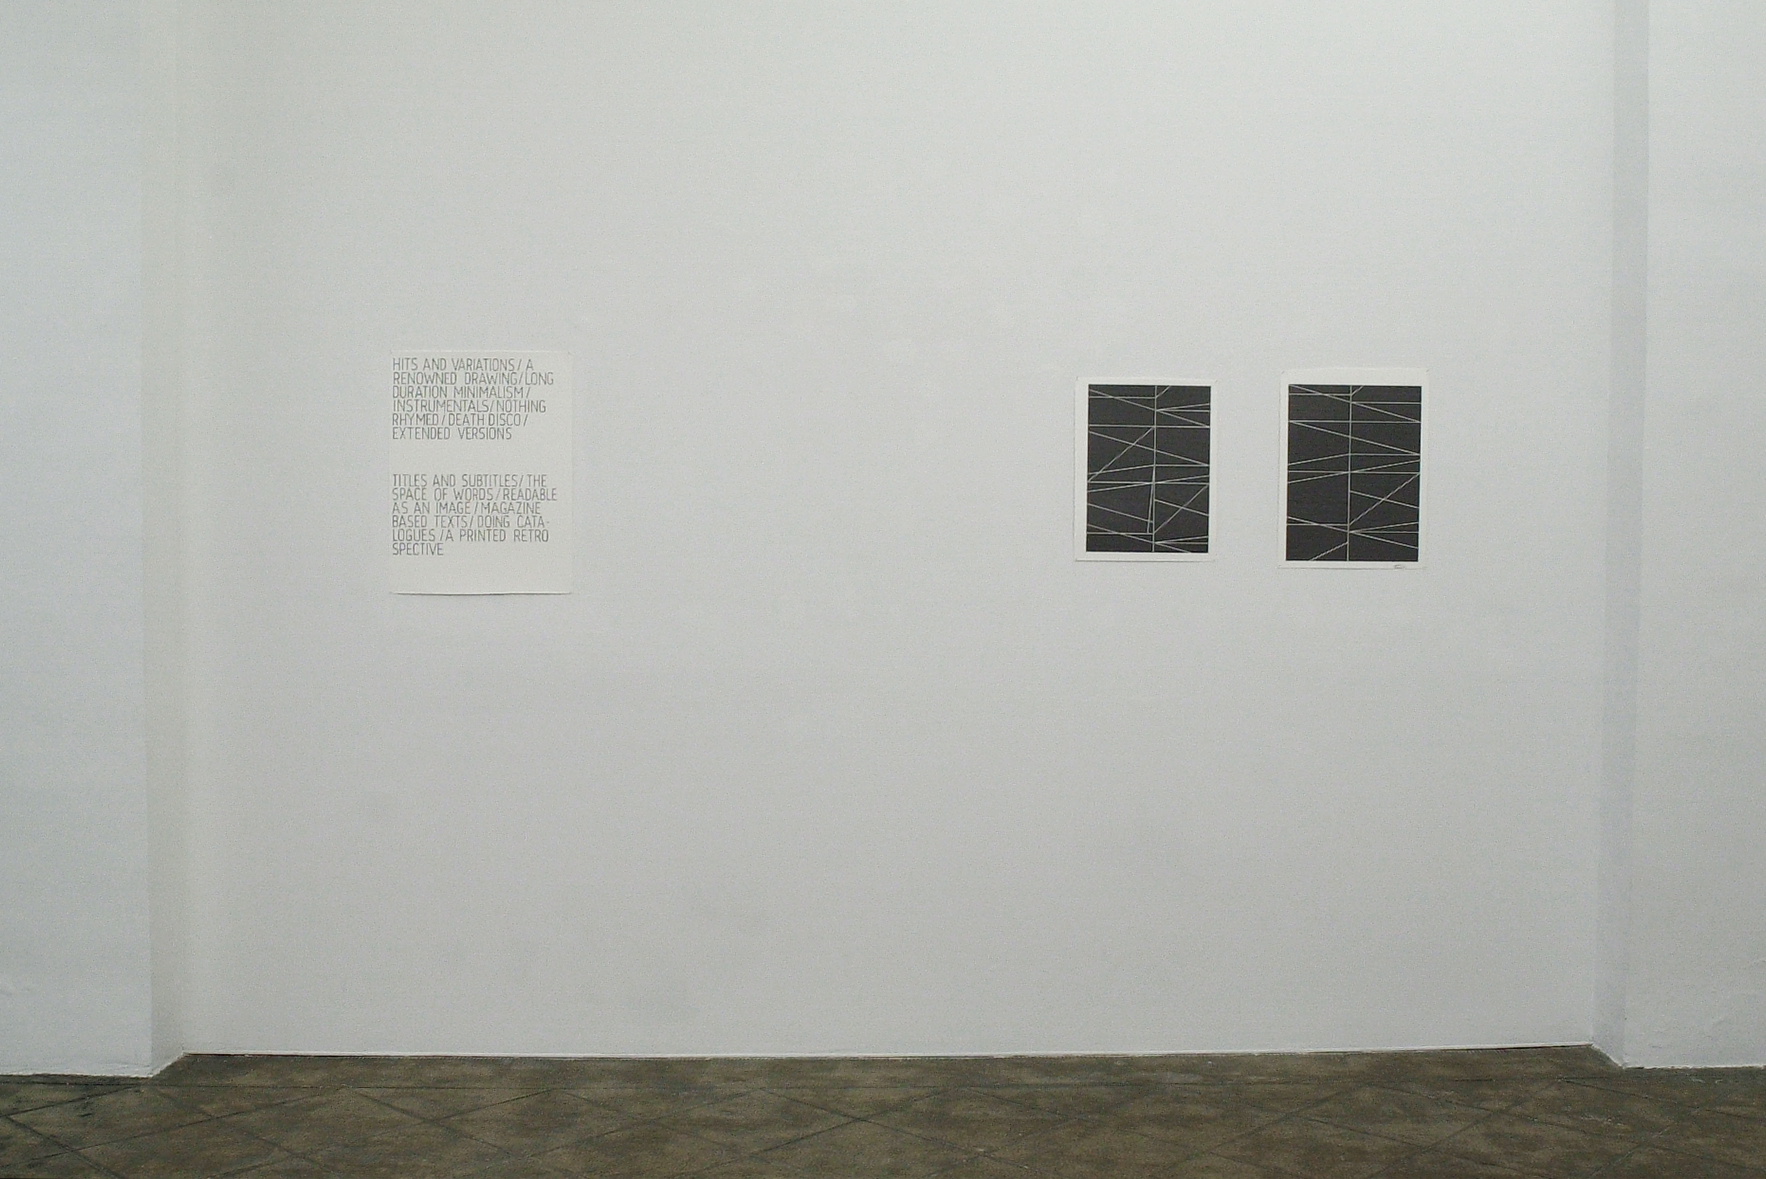 Installation view: Modernist Persuasion, ProjecteSD, Barcelona, 2010 |  | ProjecteSD